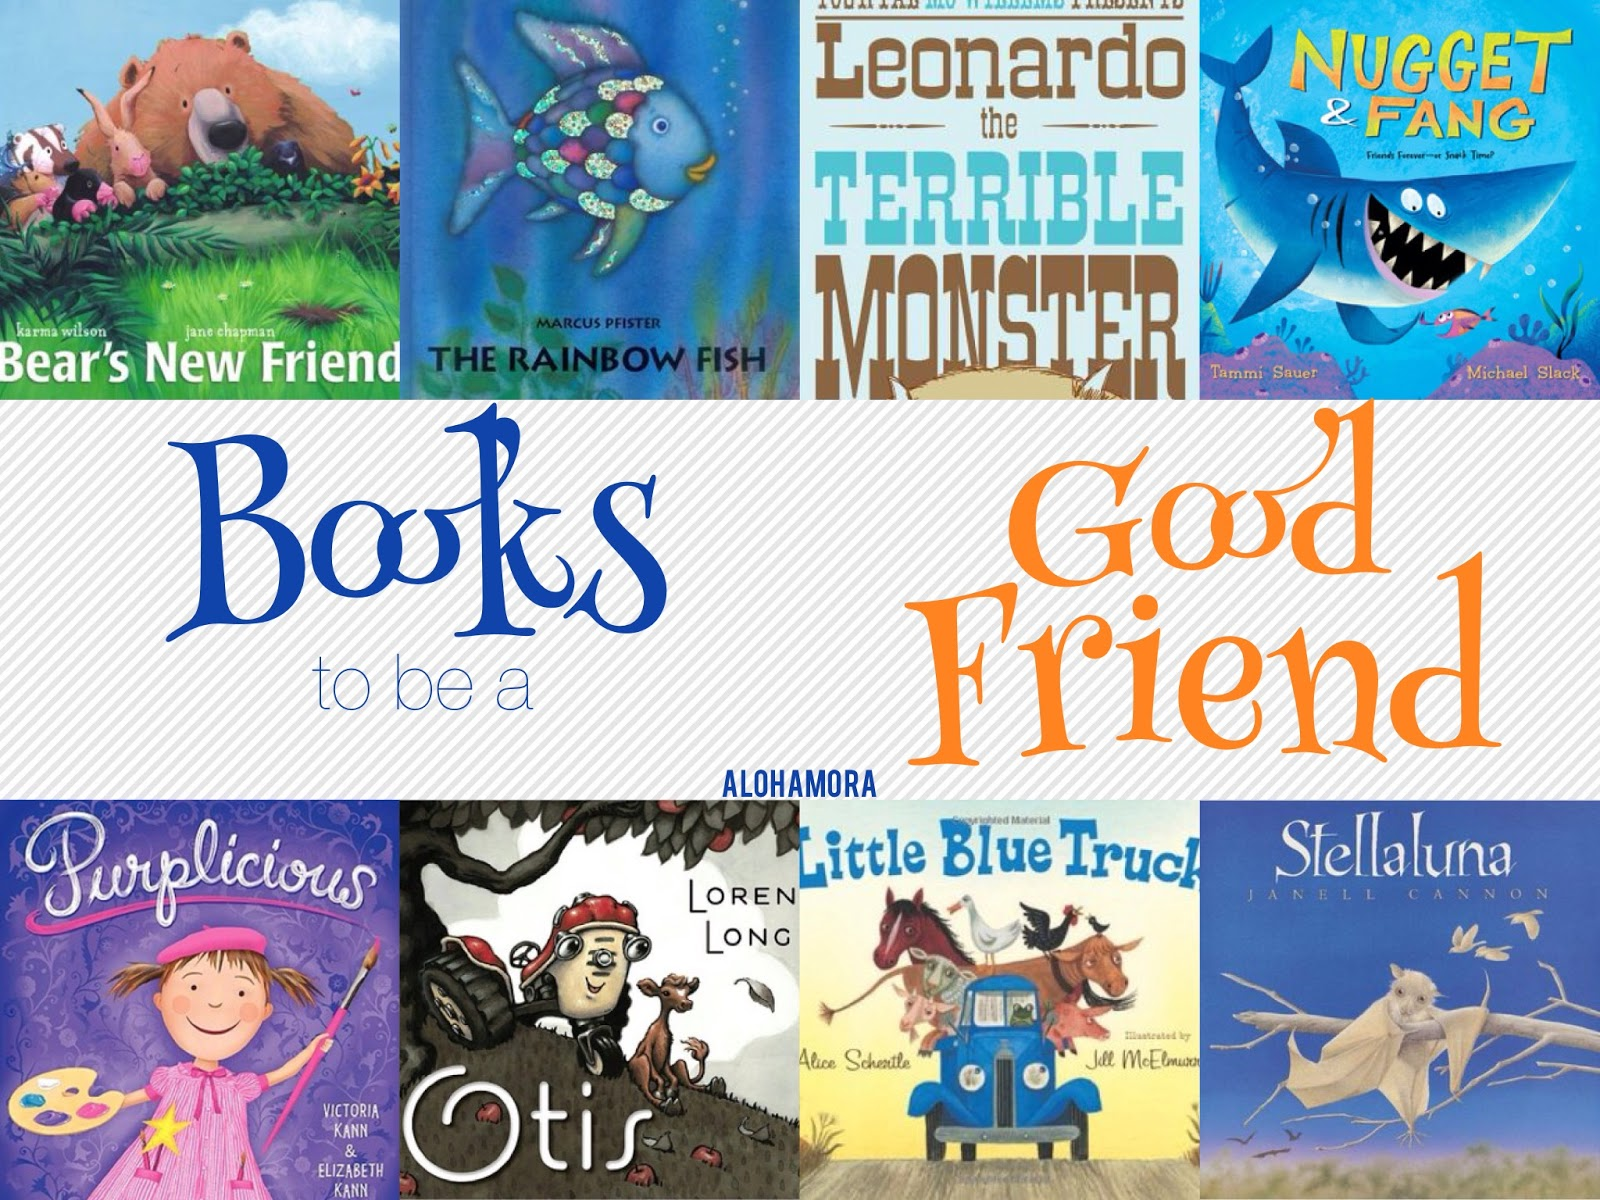 Alohamora Open A Book Books On Being A Good Friend And